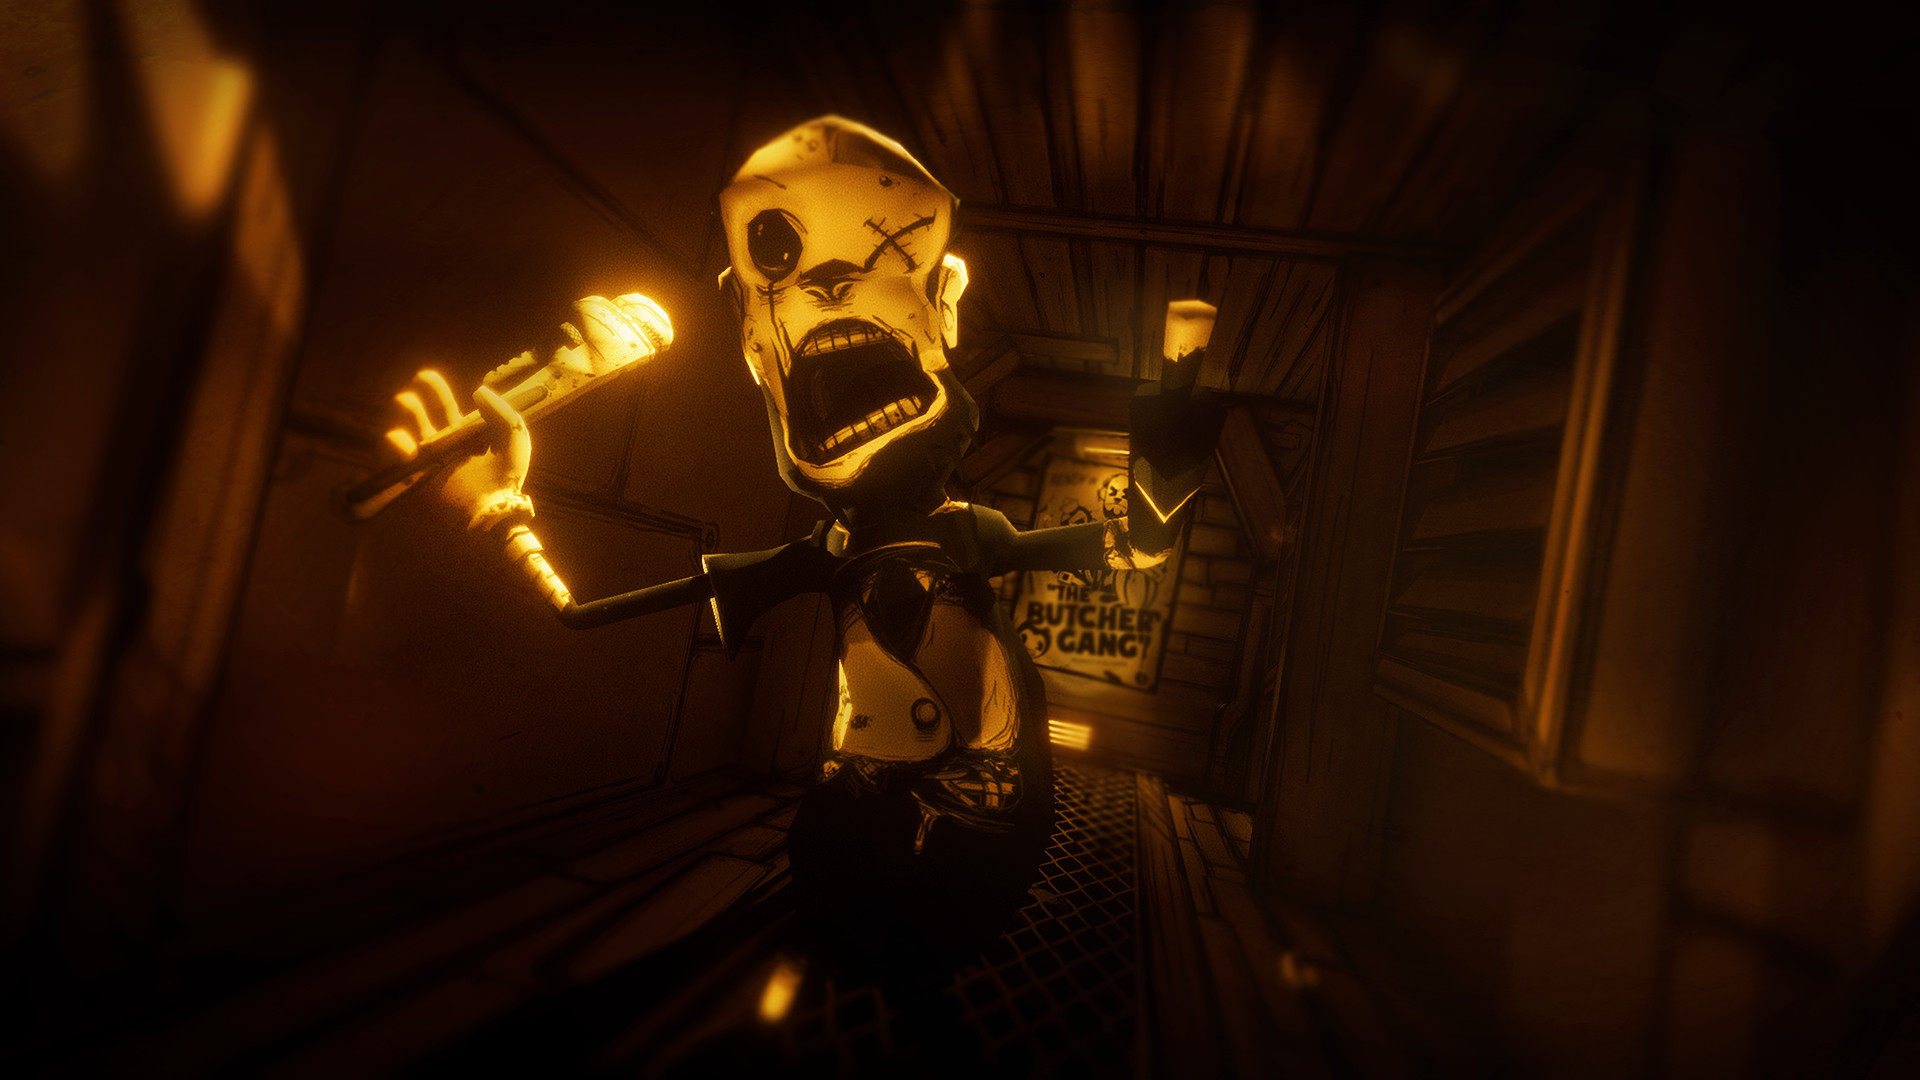 bendy and the ink machine free play unblocked